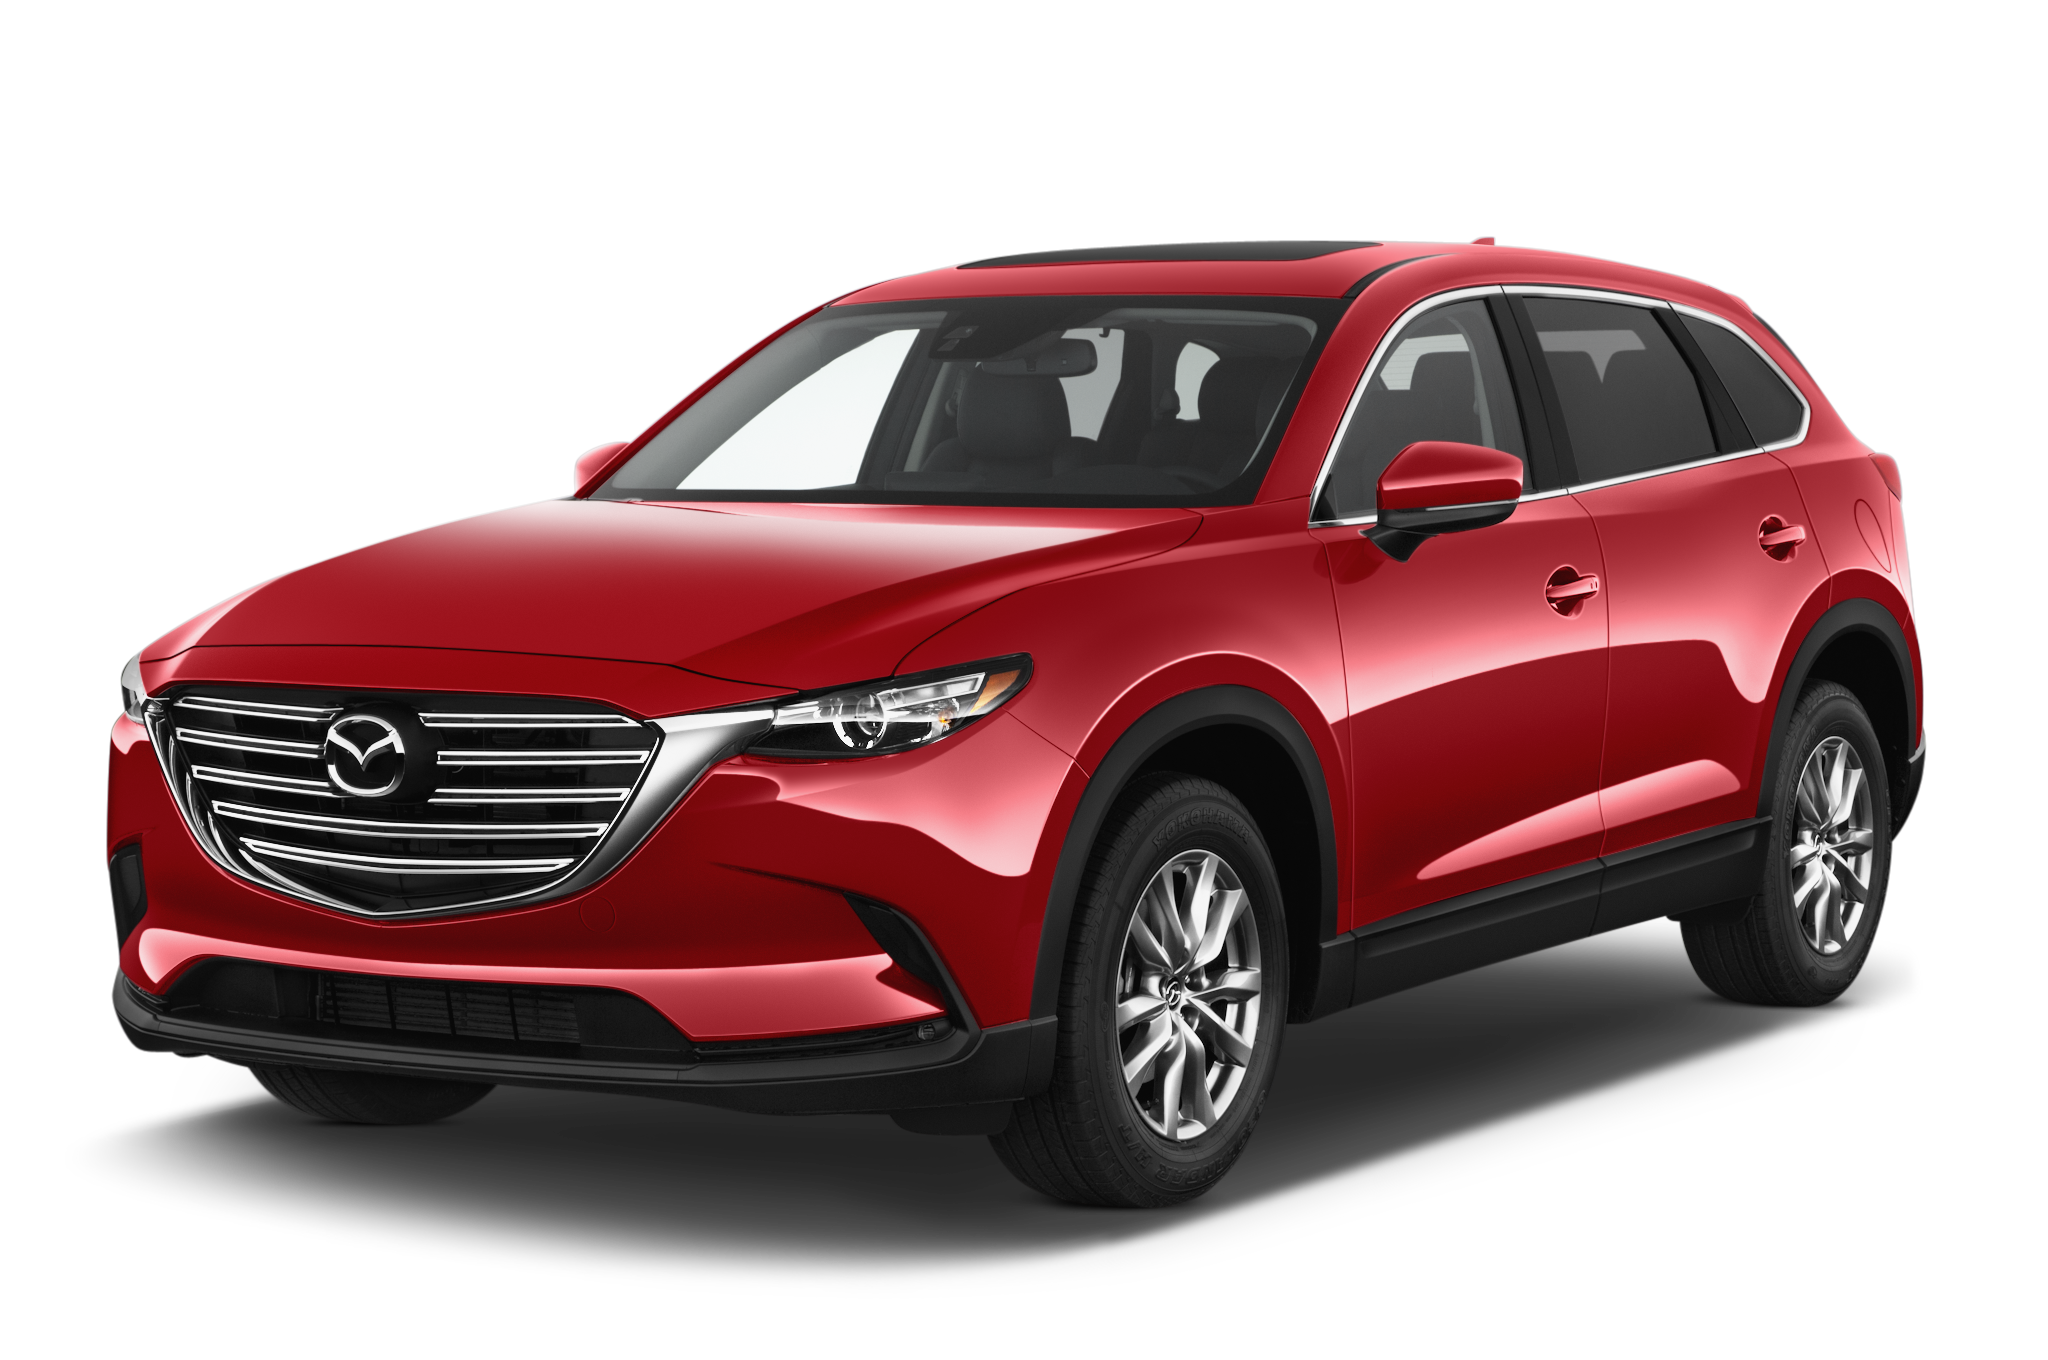 Mazda Cx 9 s Informations Articles BestCarMag